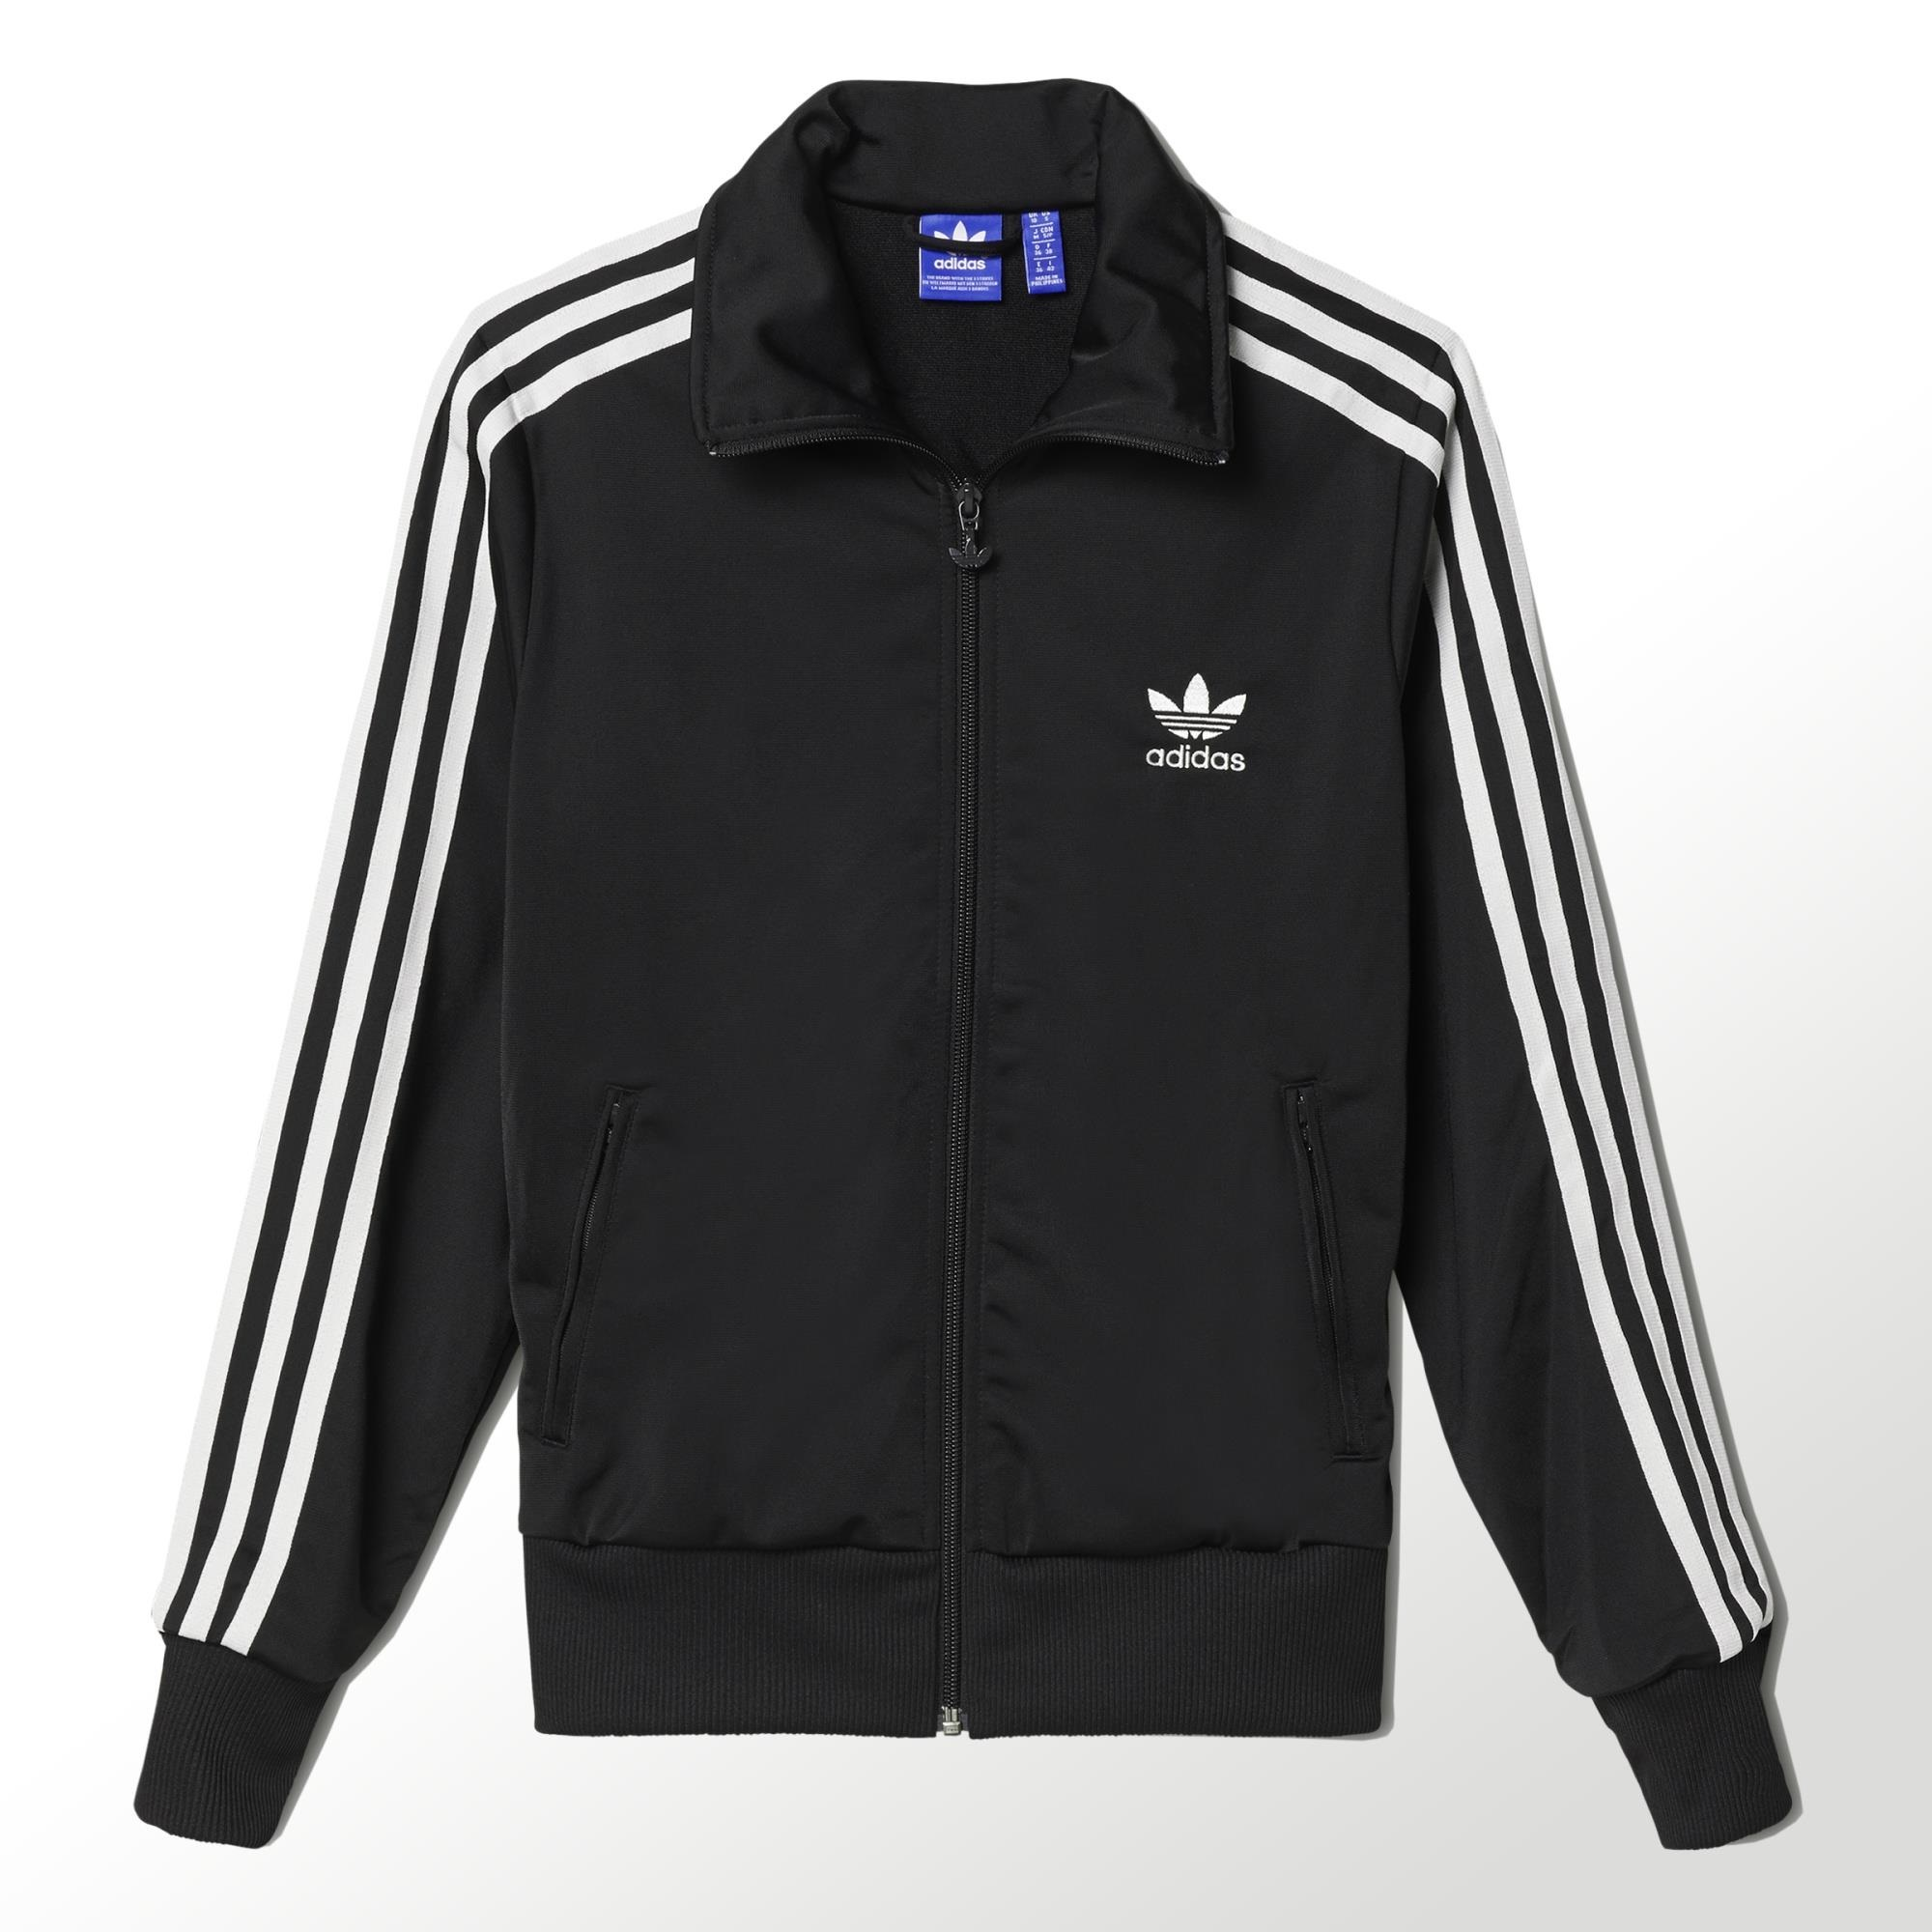 adidas firebird track top adidas uk. Black Bedroom Furniture Sets. Home Design Ideas